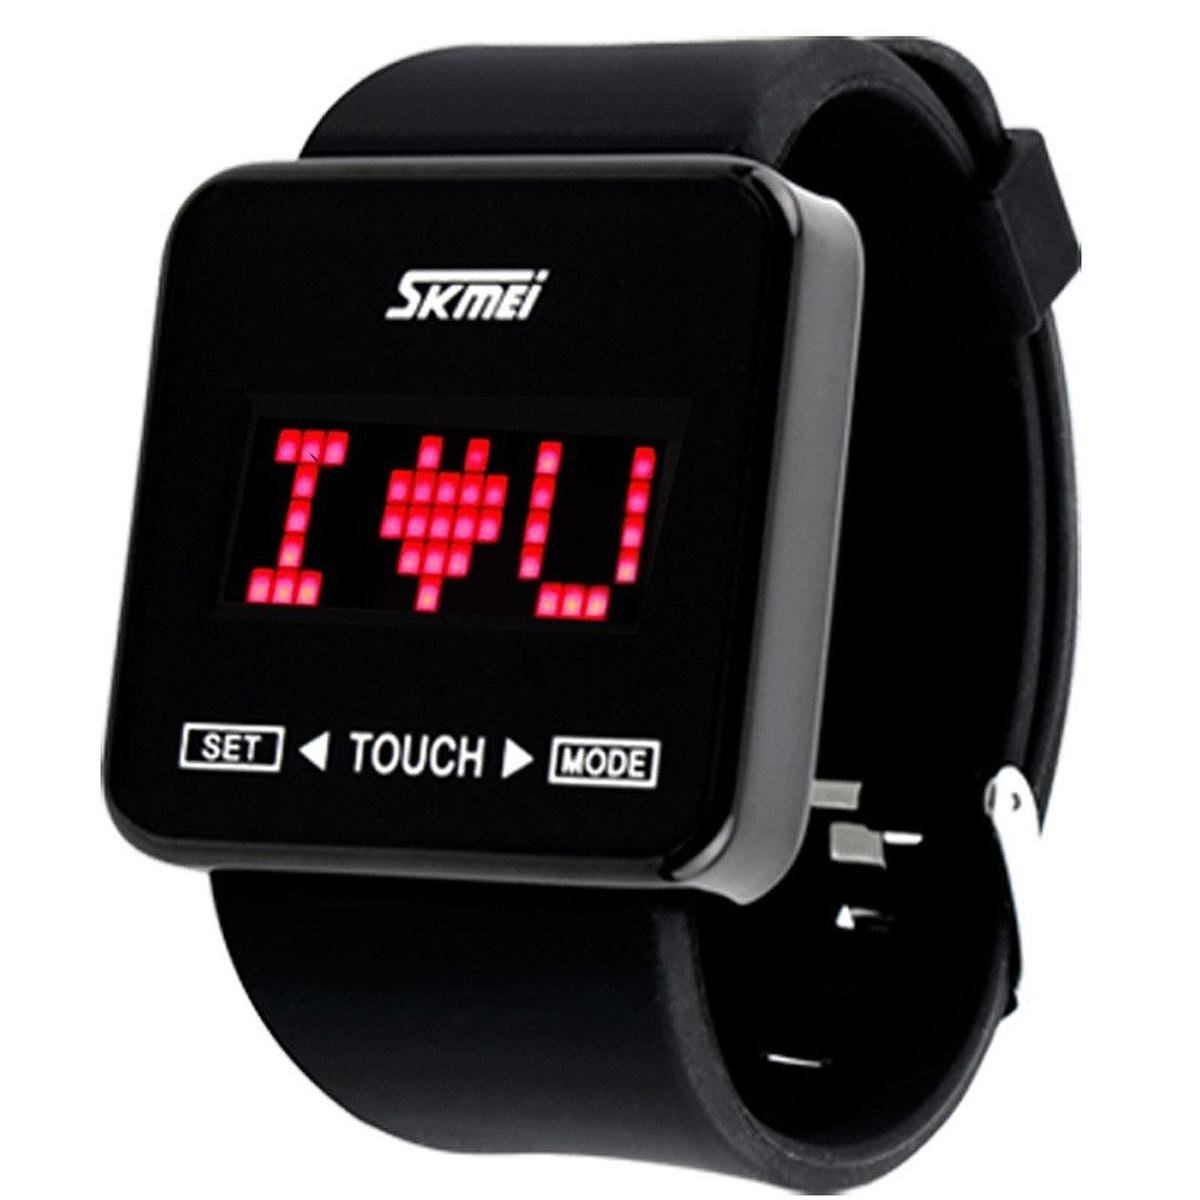 Jewtme Touch Screen Digital LED Waterproof Boys Girls Sport Casual Wrist Watches -Black